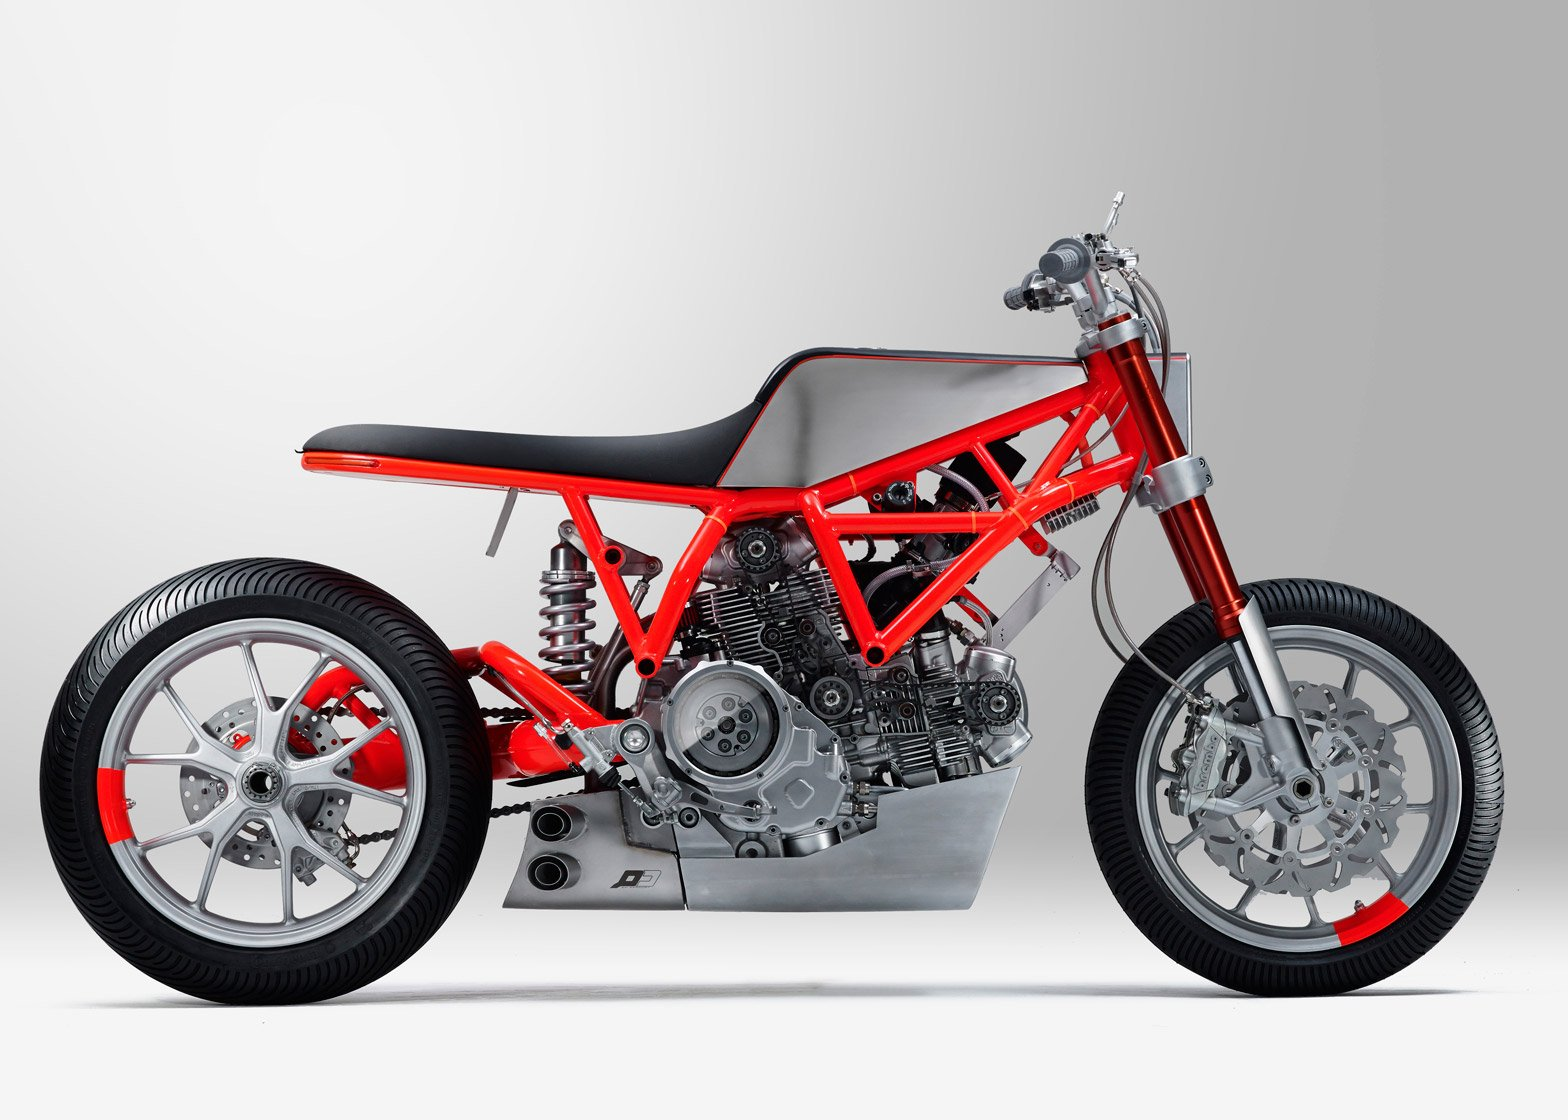 Ducati Scrambler motorcycle by Untitled Motorcycles San Francisco